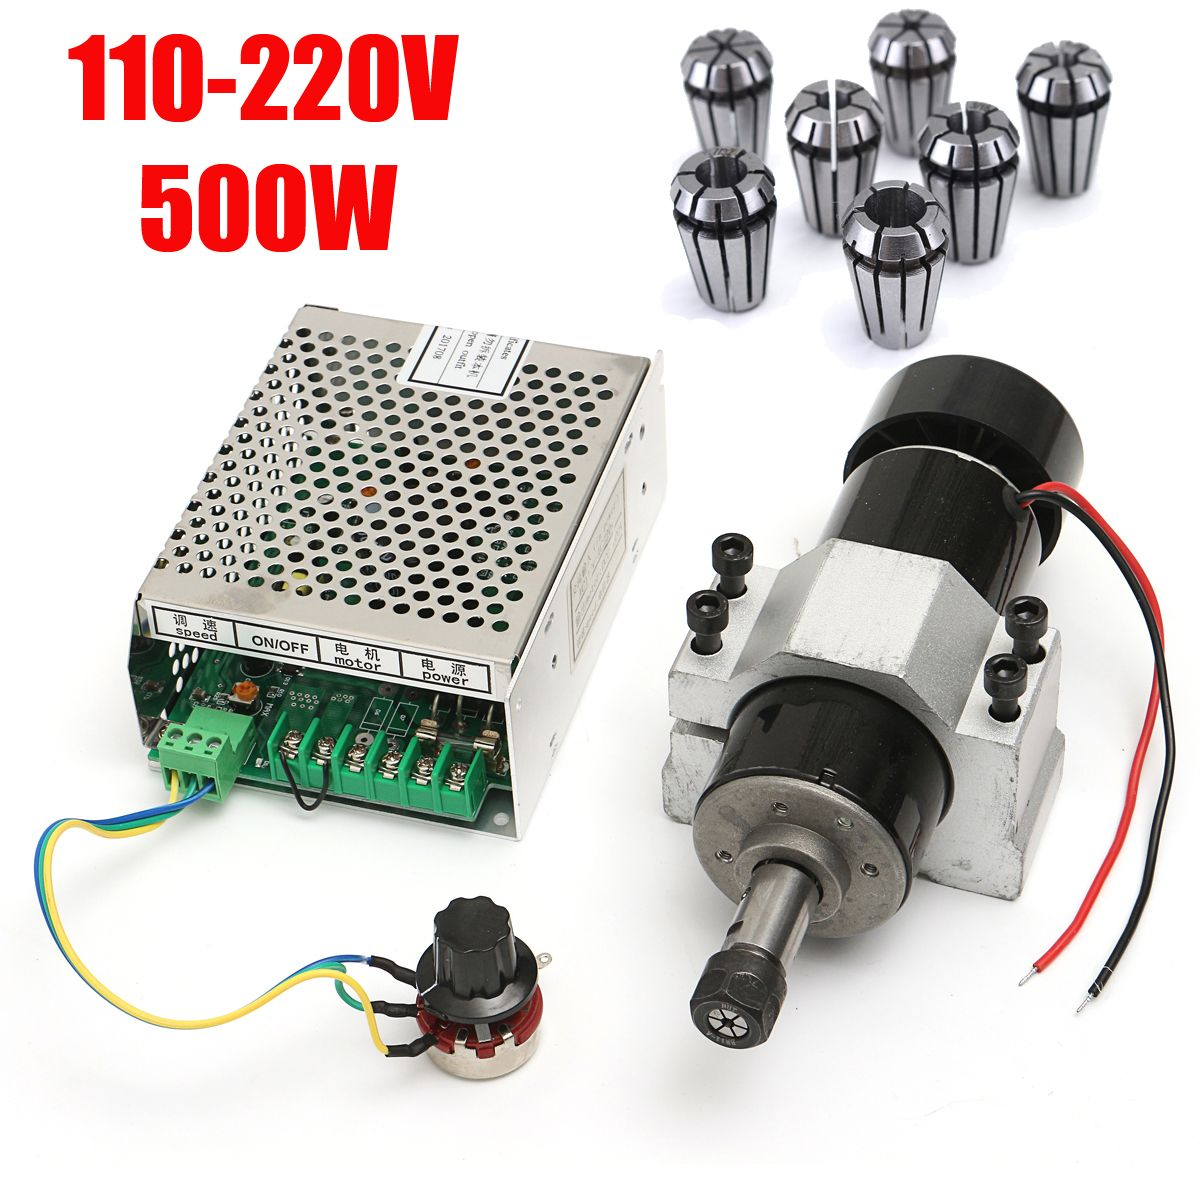 500W Air Cooled CNC Spindle Milling Motor 0.5kw With Spindle Speed Power Converter + 7Pcs ER11 Precision Spring Chuck Collet Set